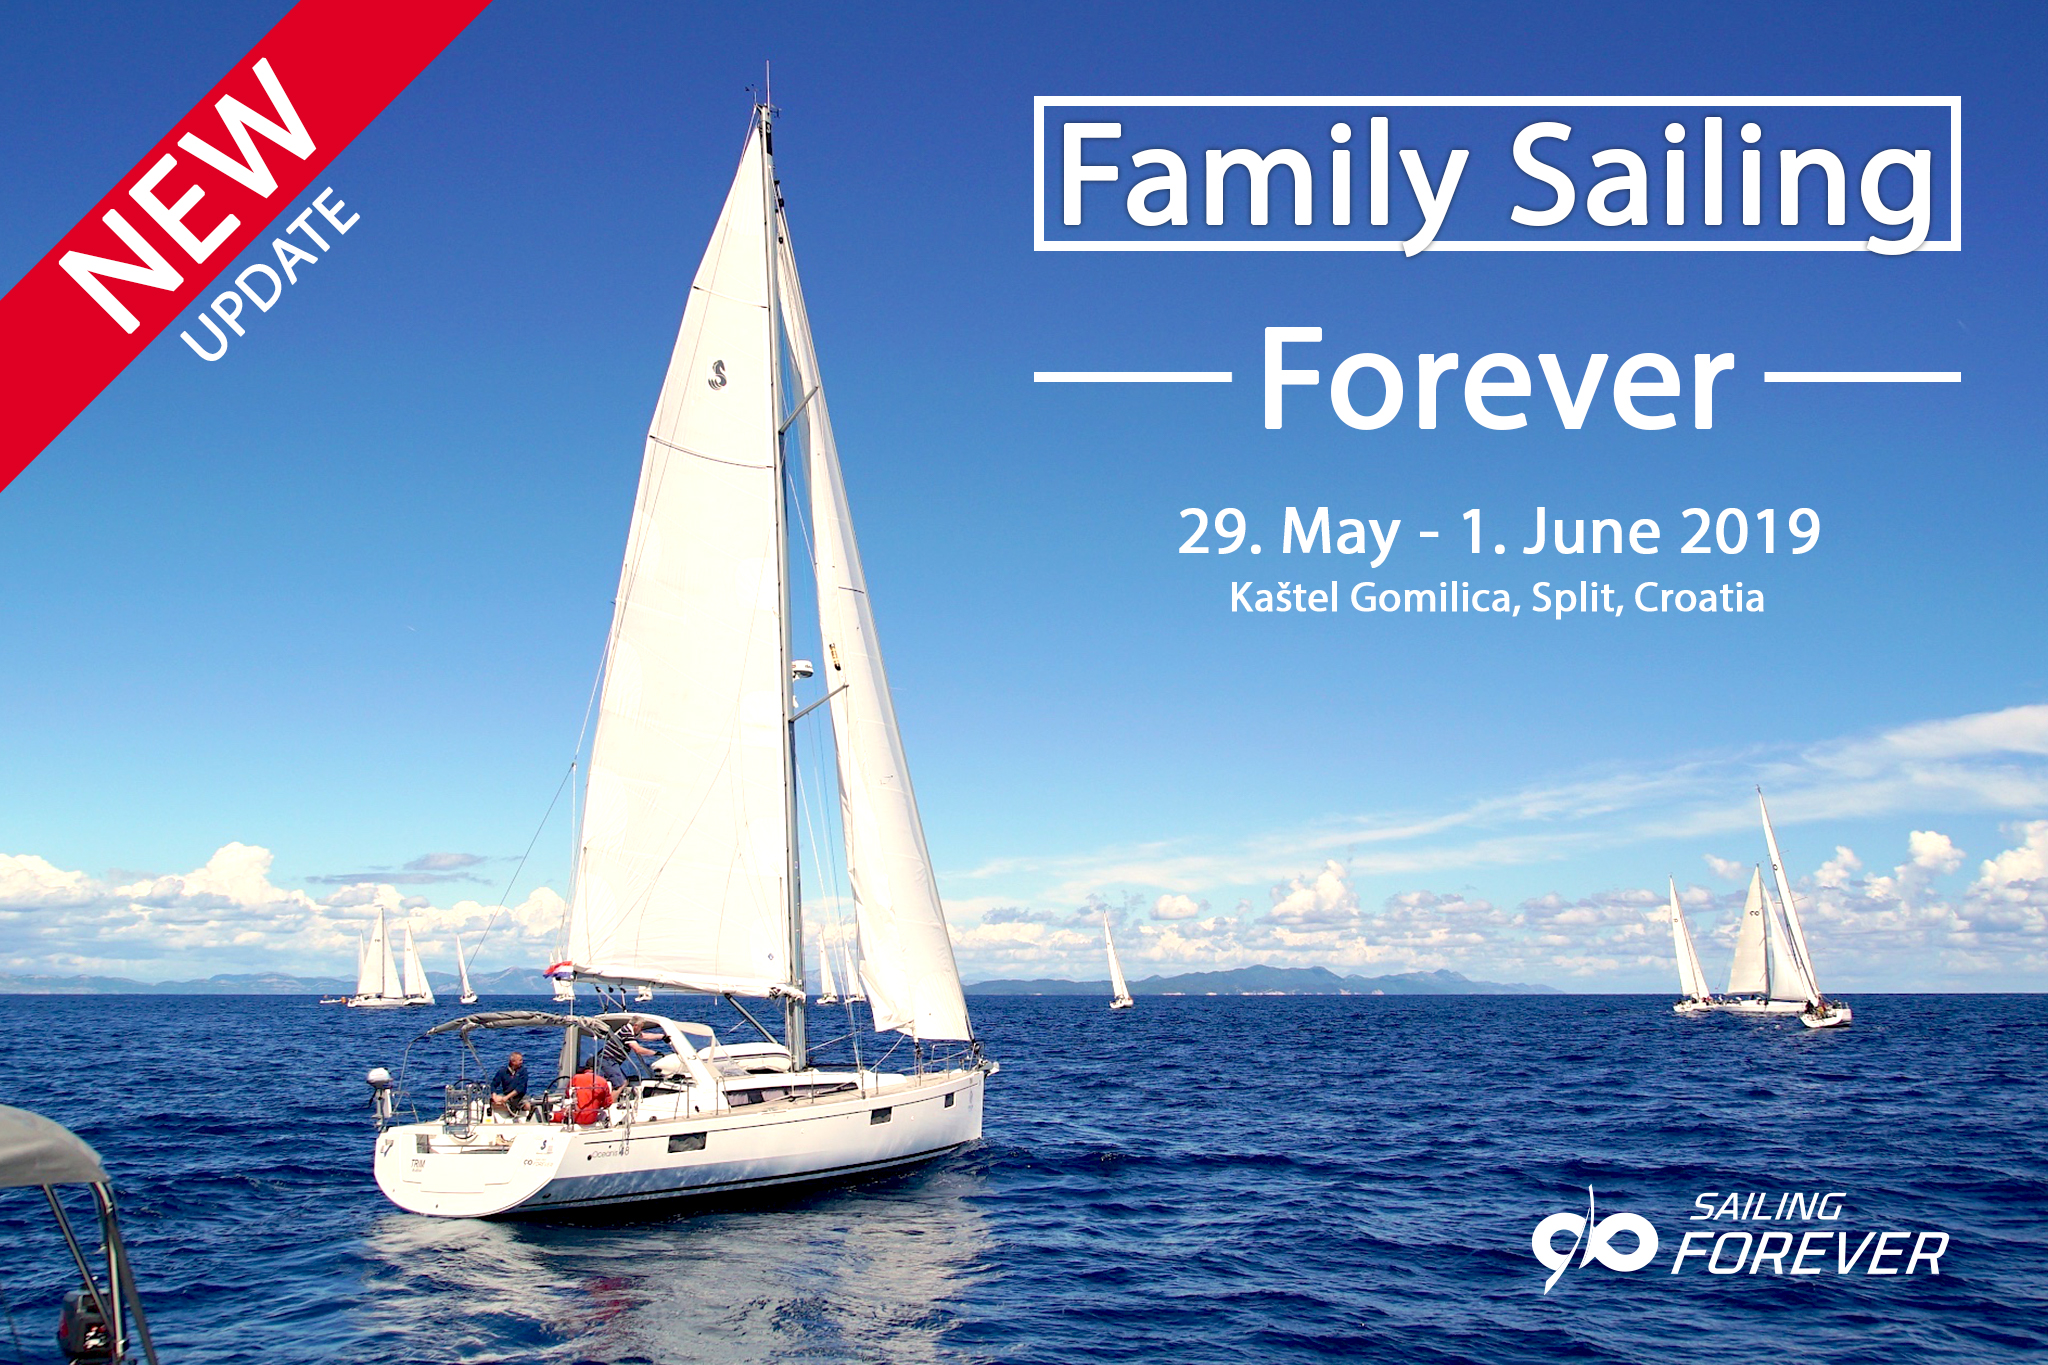 Family Sailing Forever regatta 2019